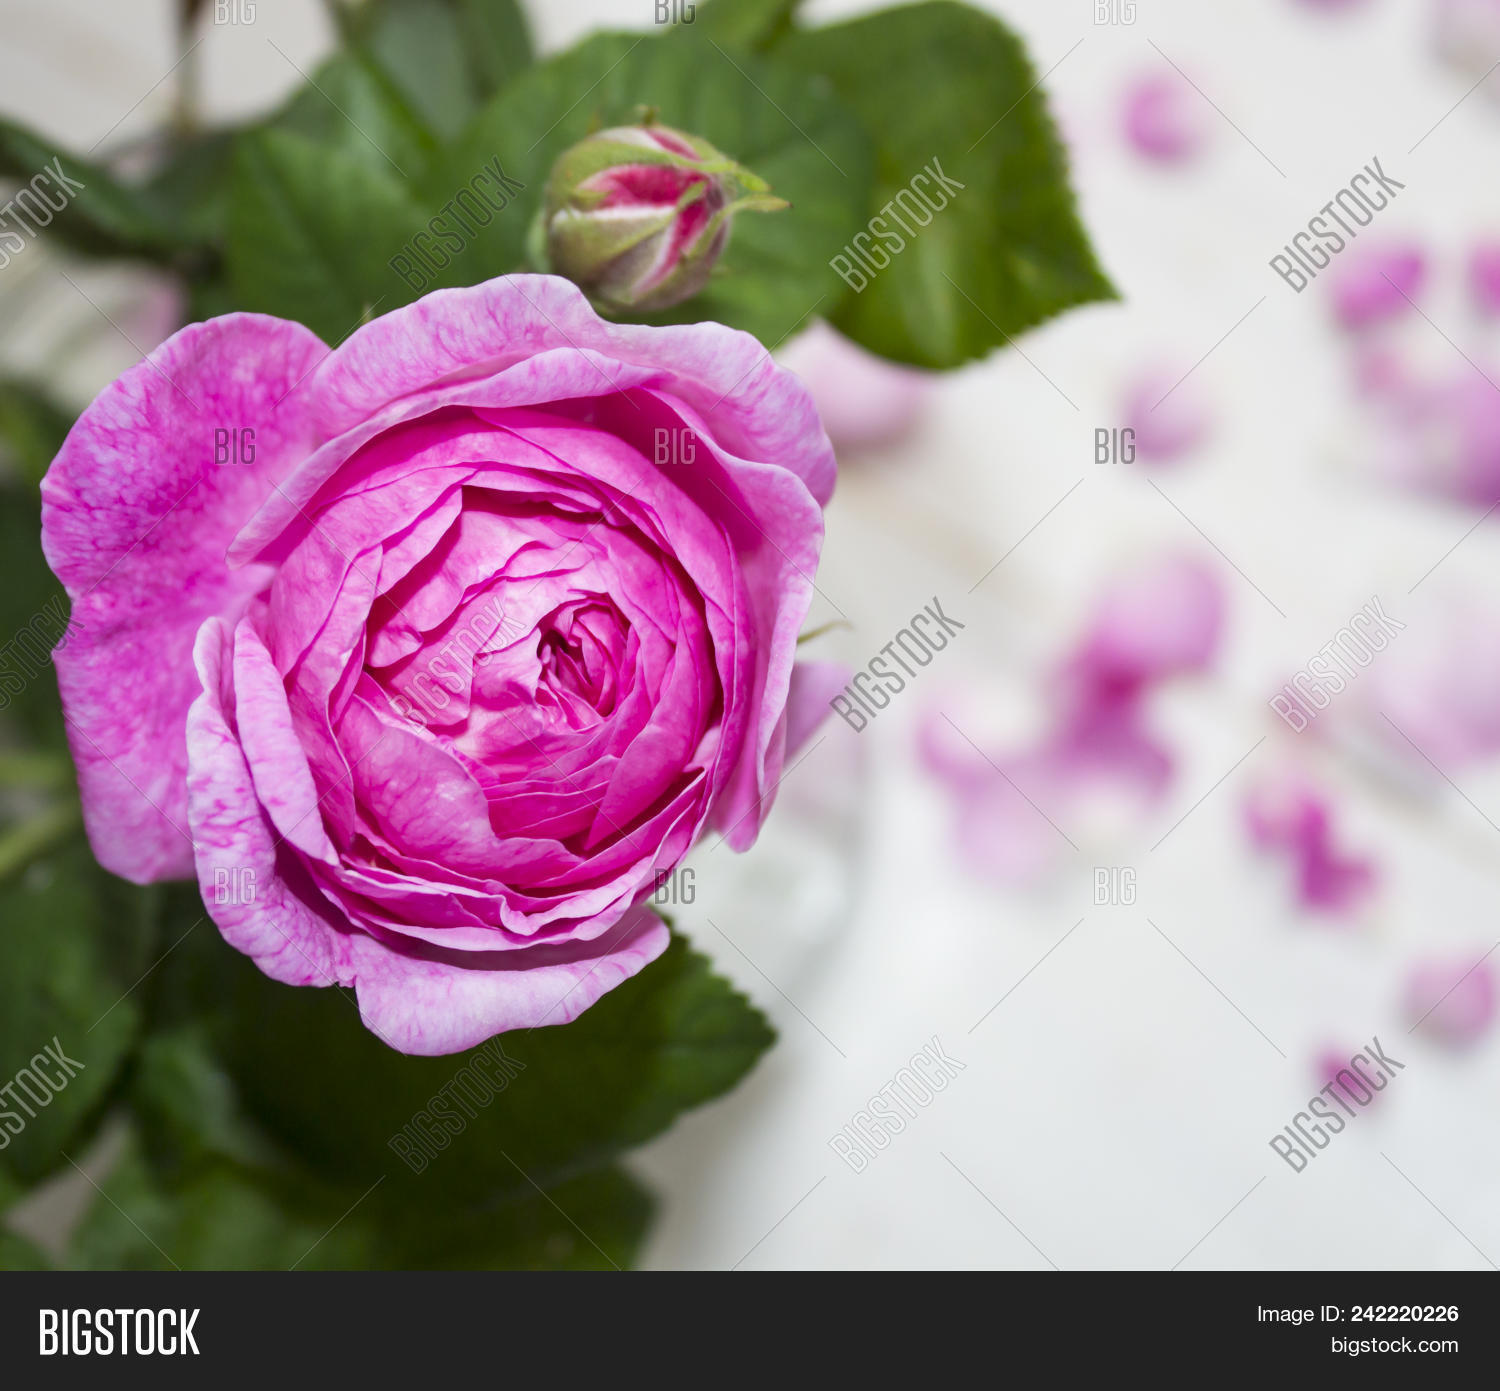 Beautiful rose flower image photo free trial bigstock beautiful rose flower in garden rose flower background roses flower texture lovely rose izmirmasajfo